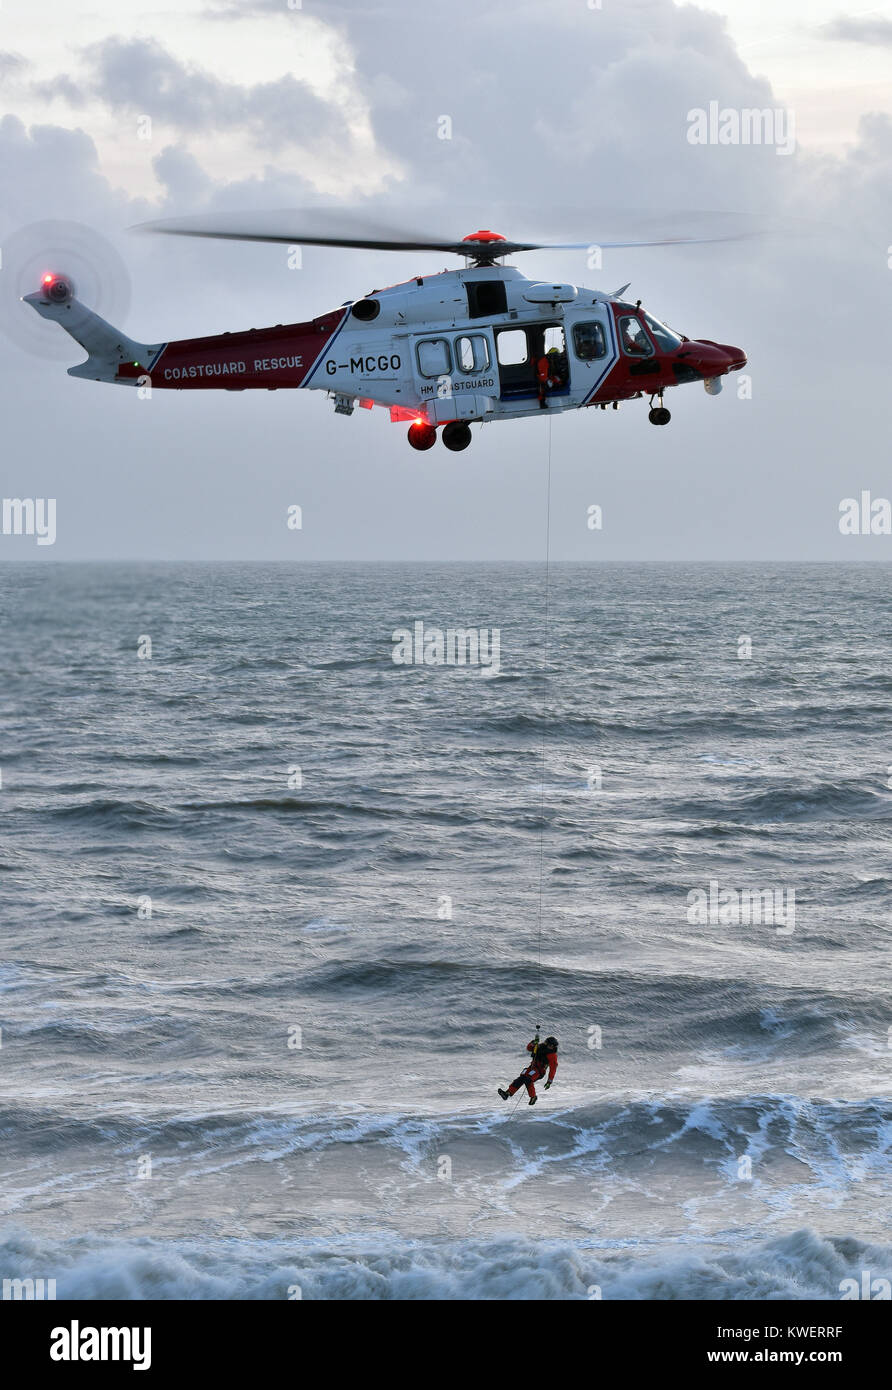 The coastguard search and rescue helicopter hovering over a rough and stormy sea at St Catherines point on the Isle - Stock Image